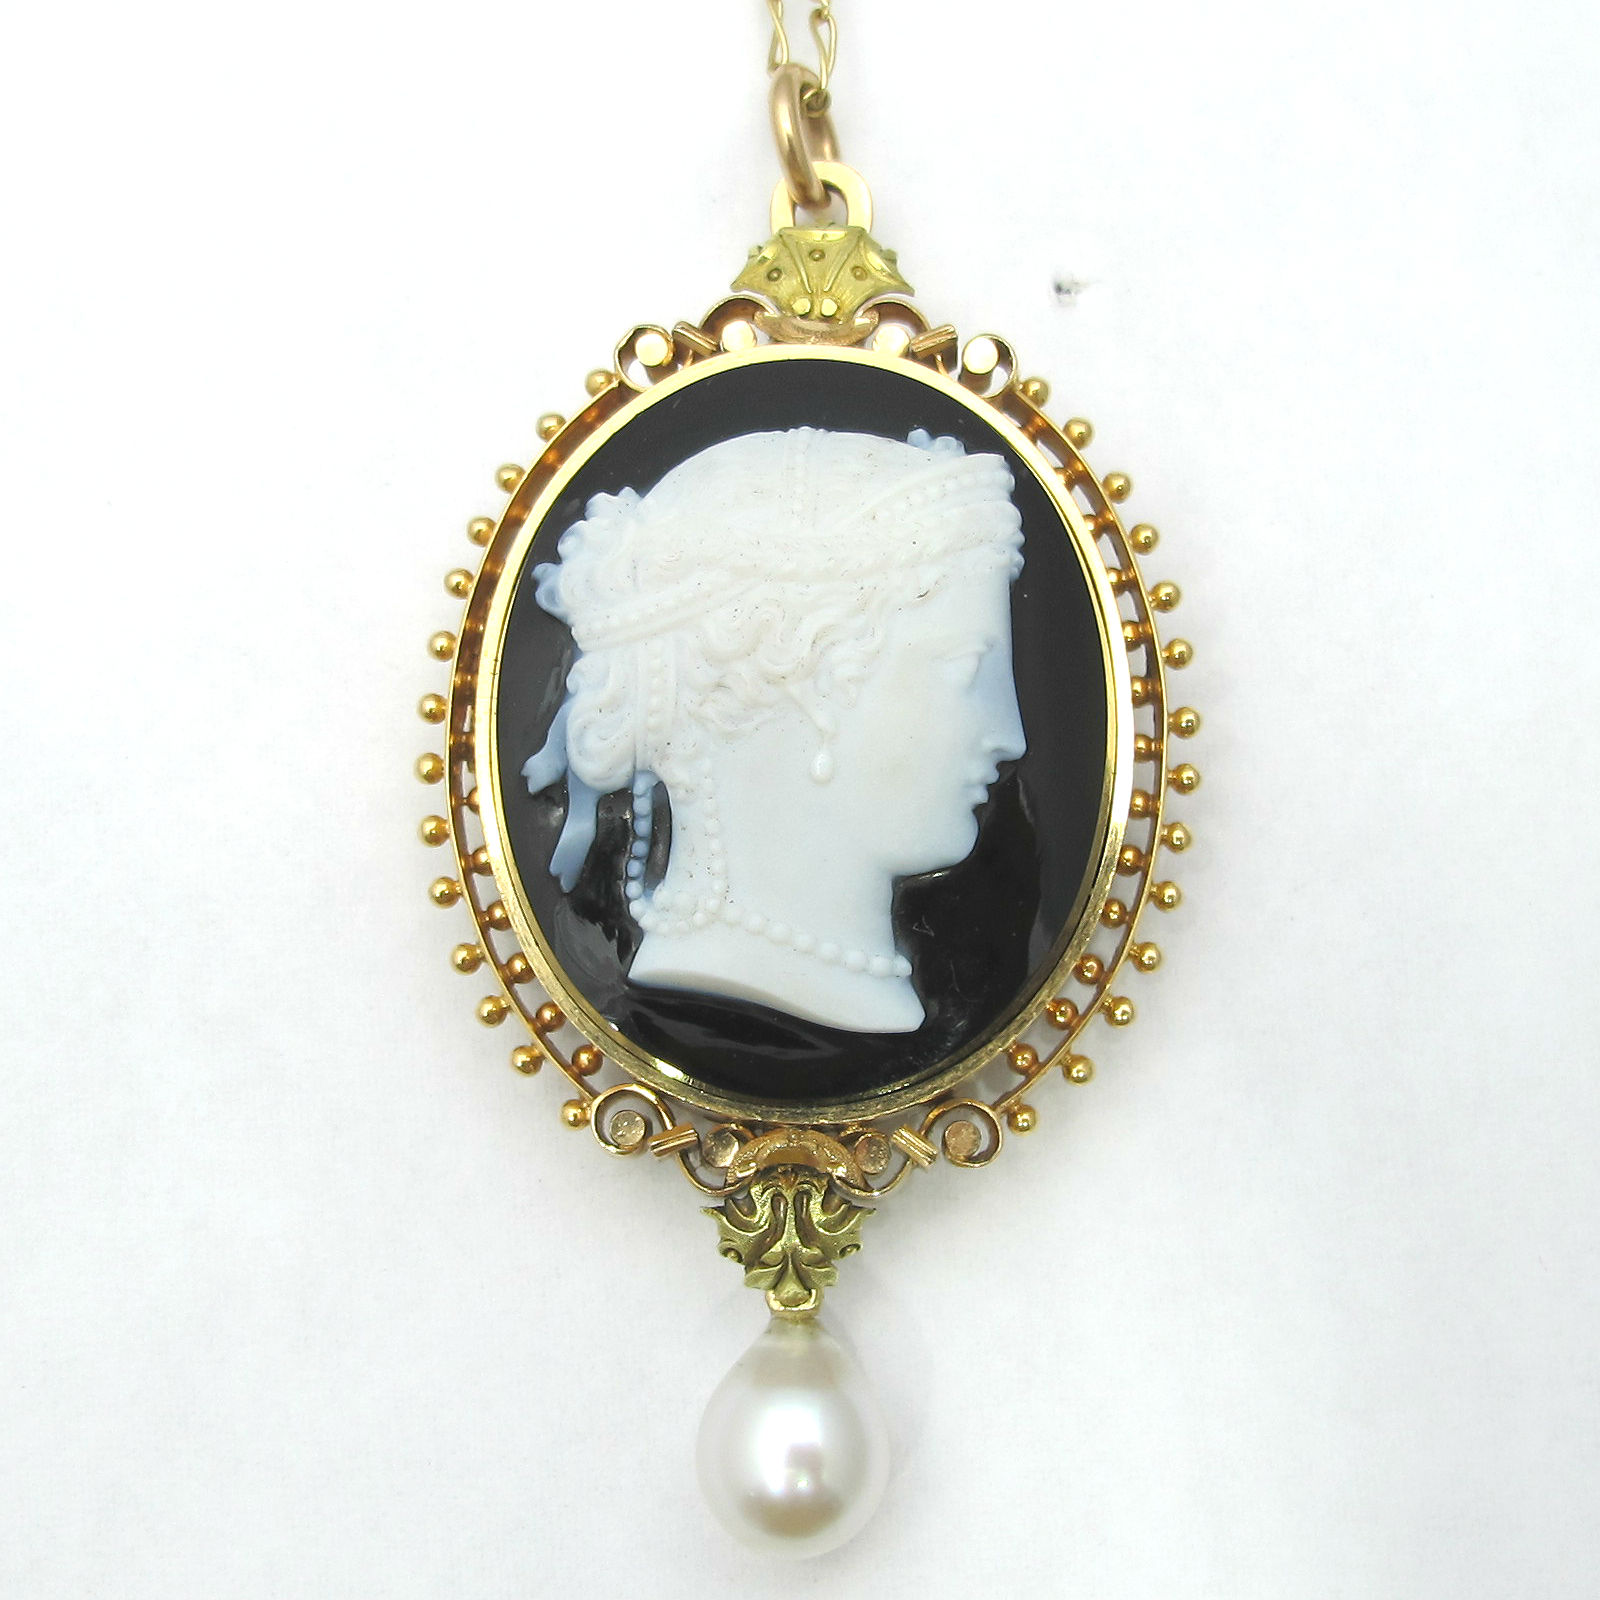 Victorian agate, 18K gold and pearl brooch pendant, at Gray & Davis